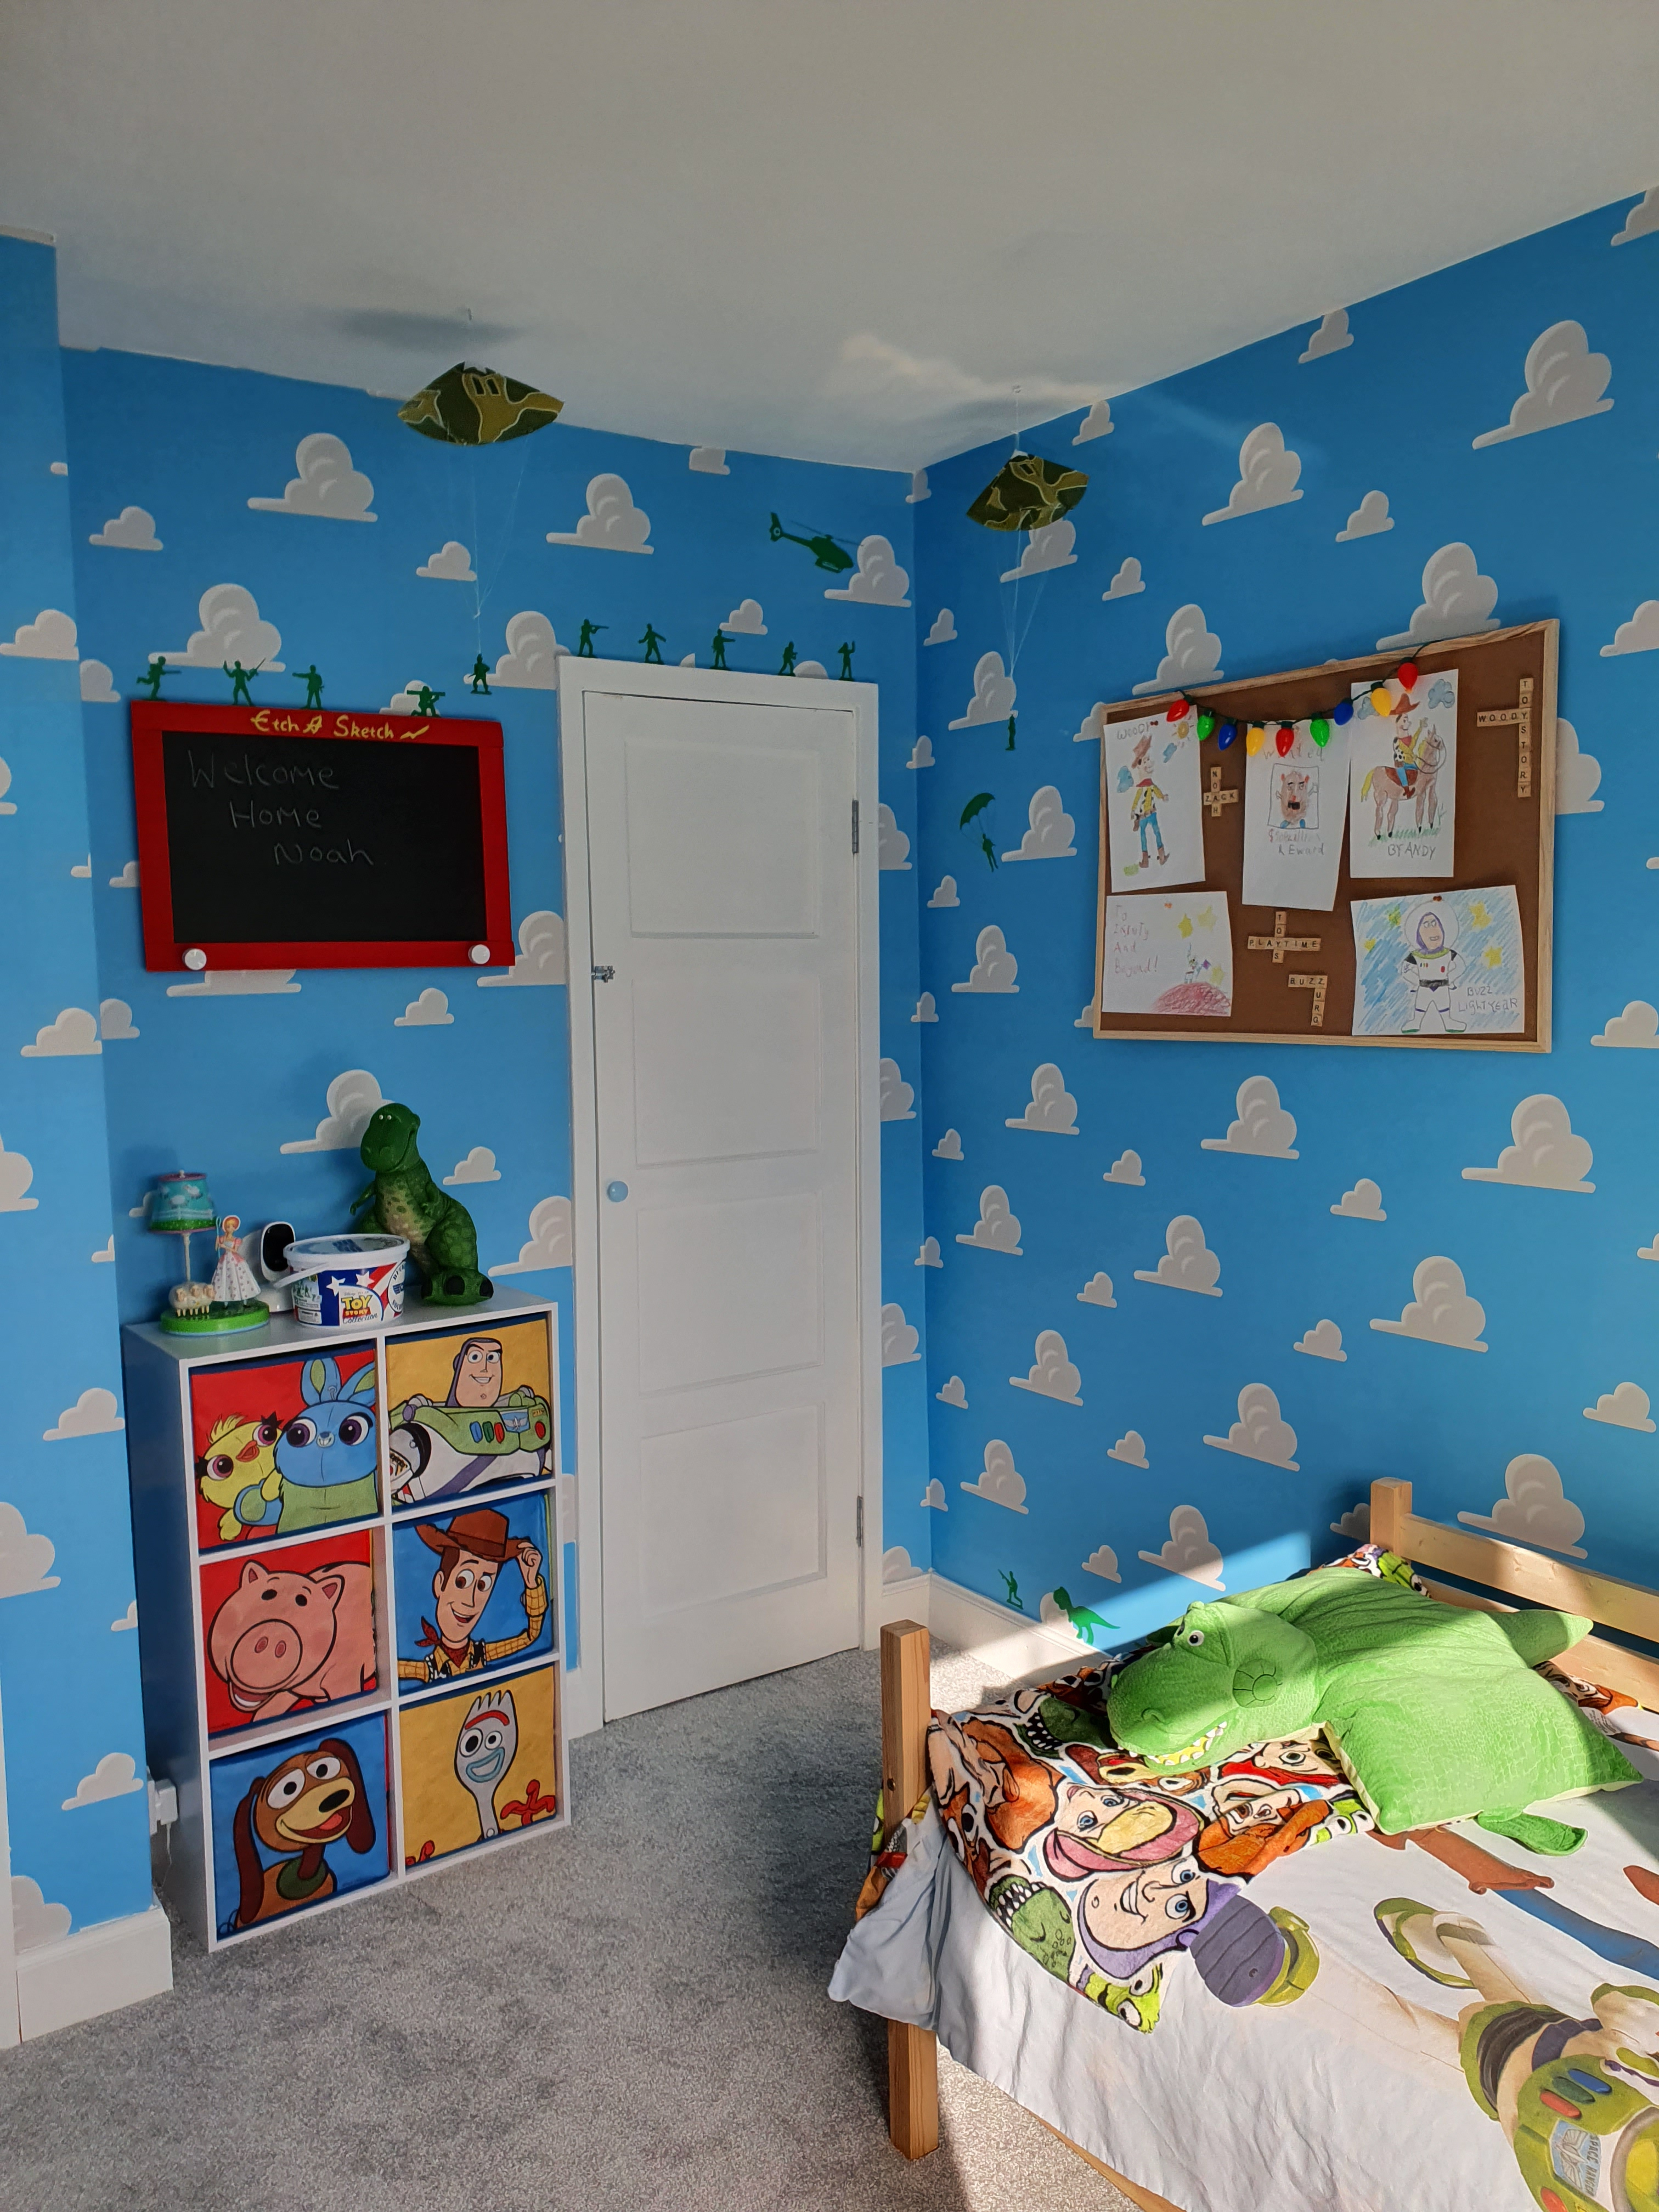 The Room Featured A Wall Mounted Etch A Sketch Hand Toys Story Themed Bedroom 3024x4032 Download Hd Wallpaper Wallpapertip